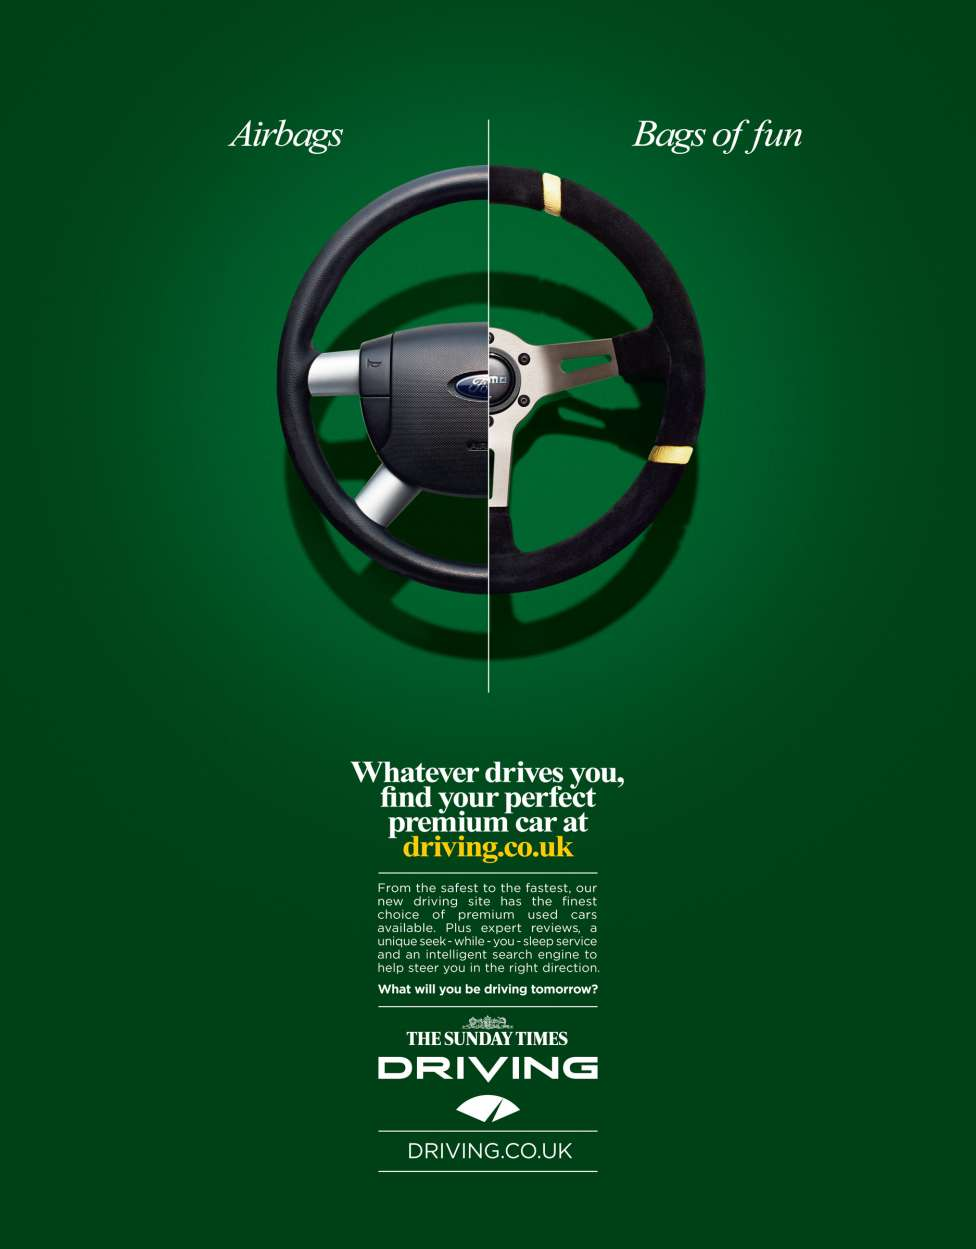 The Sunday Times: Driving — James Day Photographer